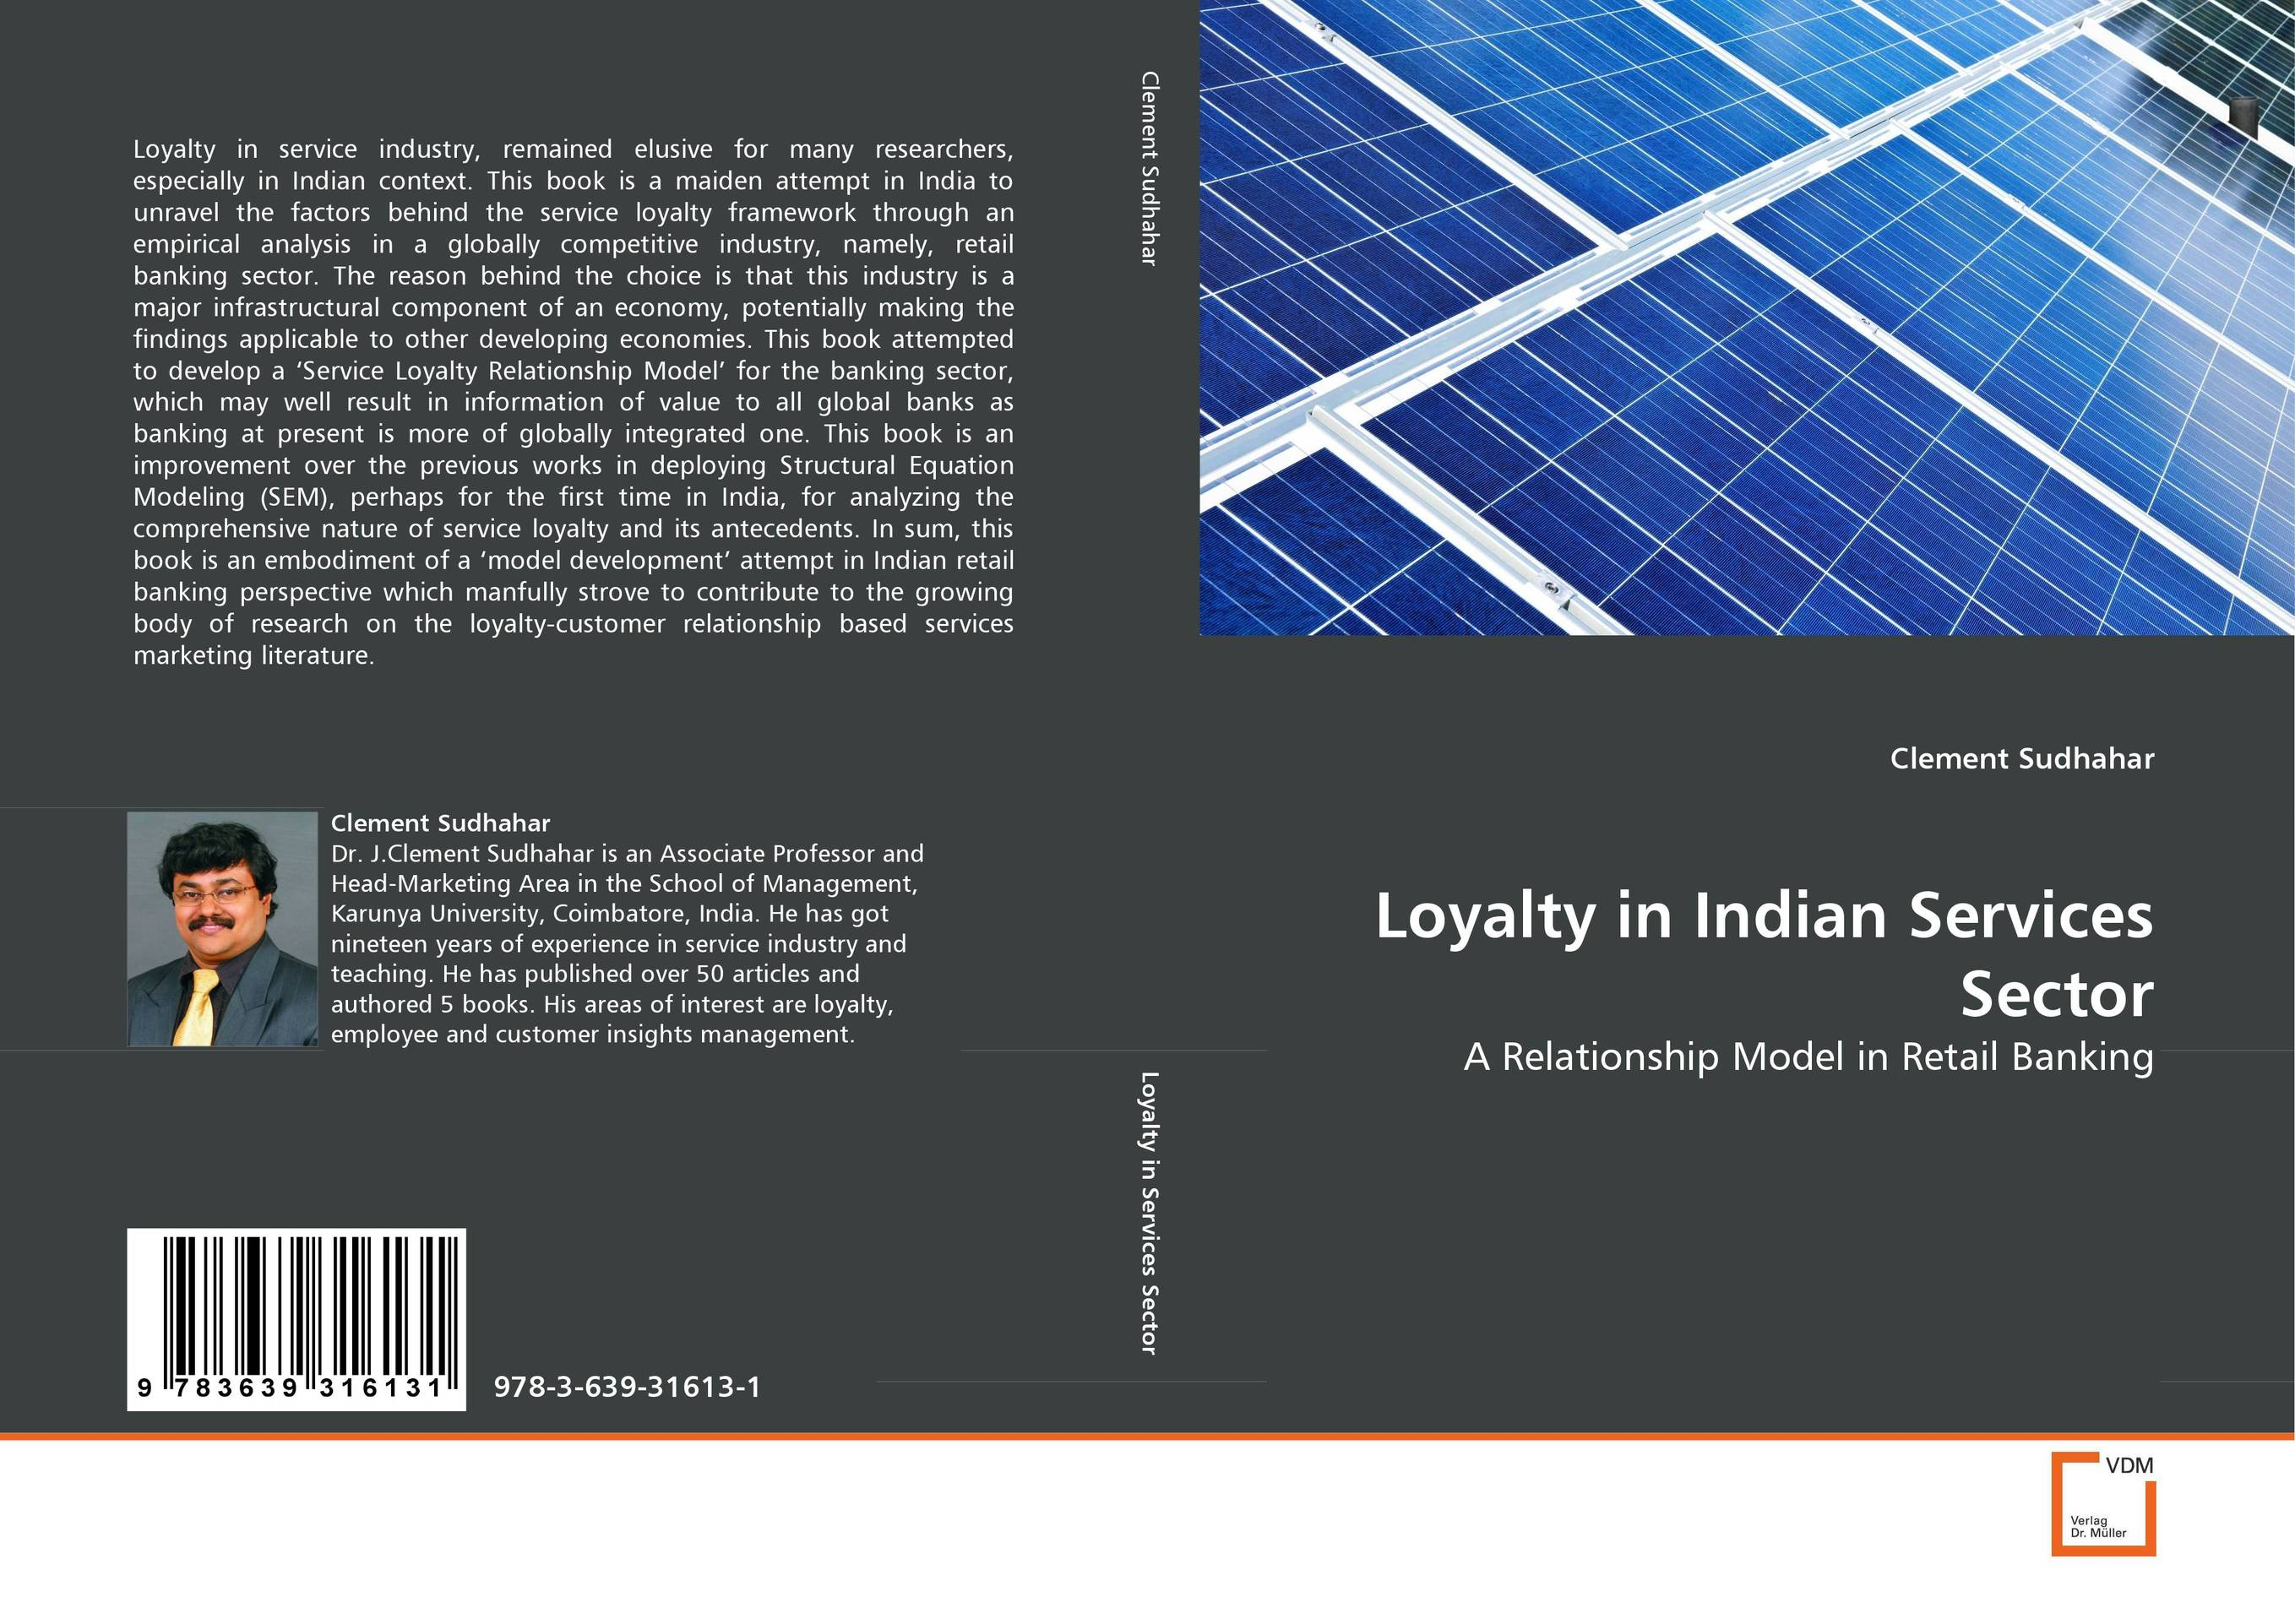 Loyalty in Indian Services Sector